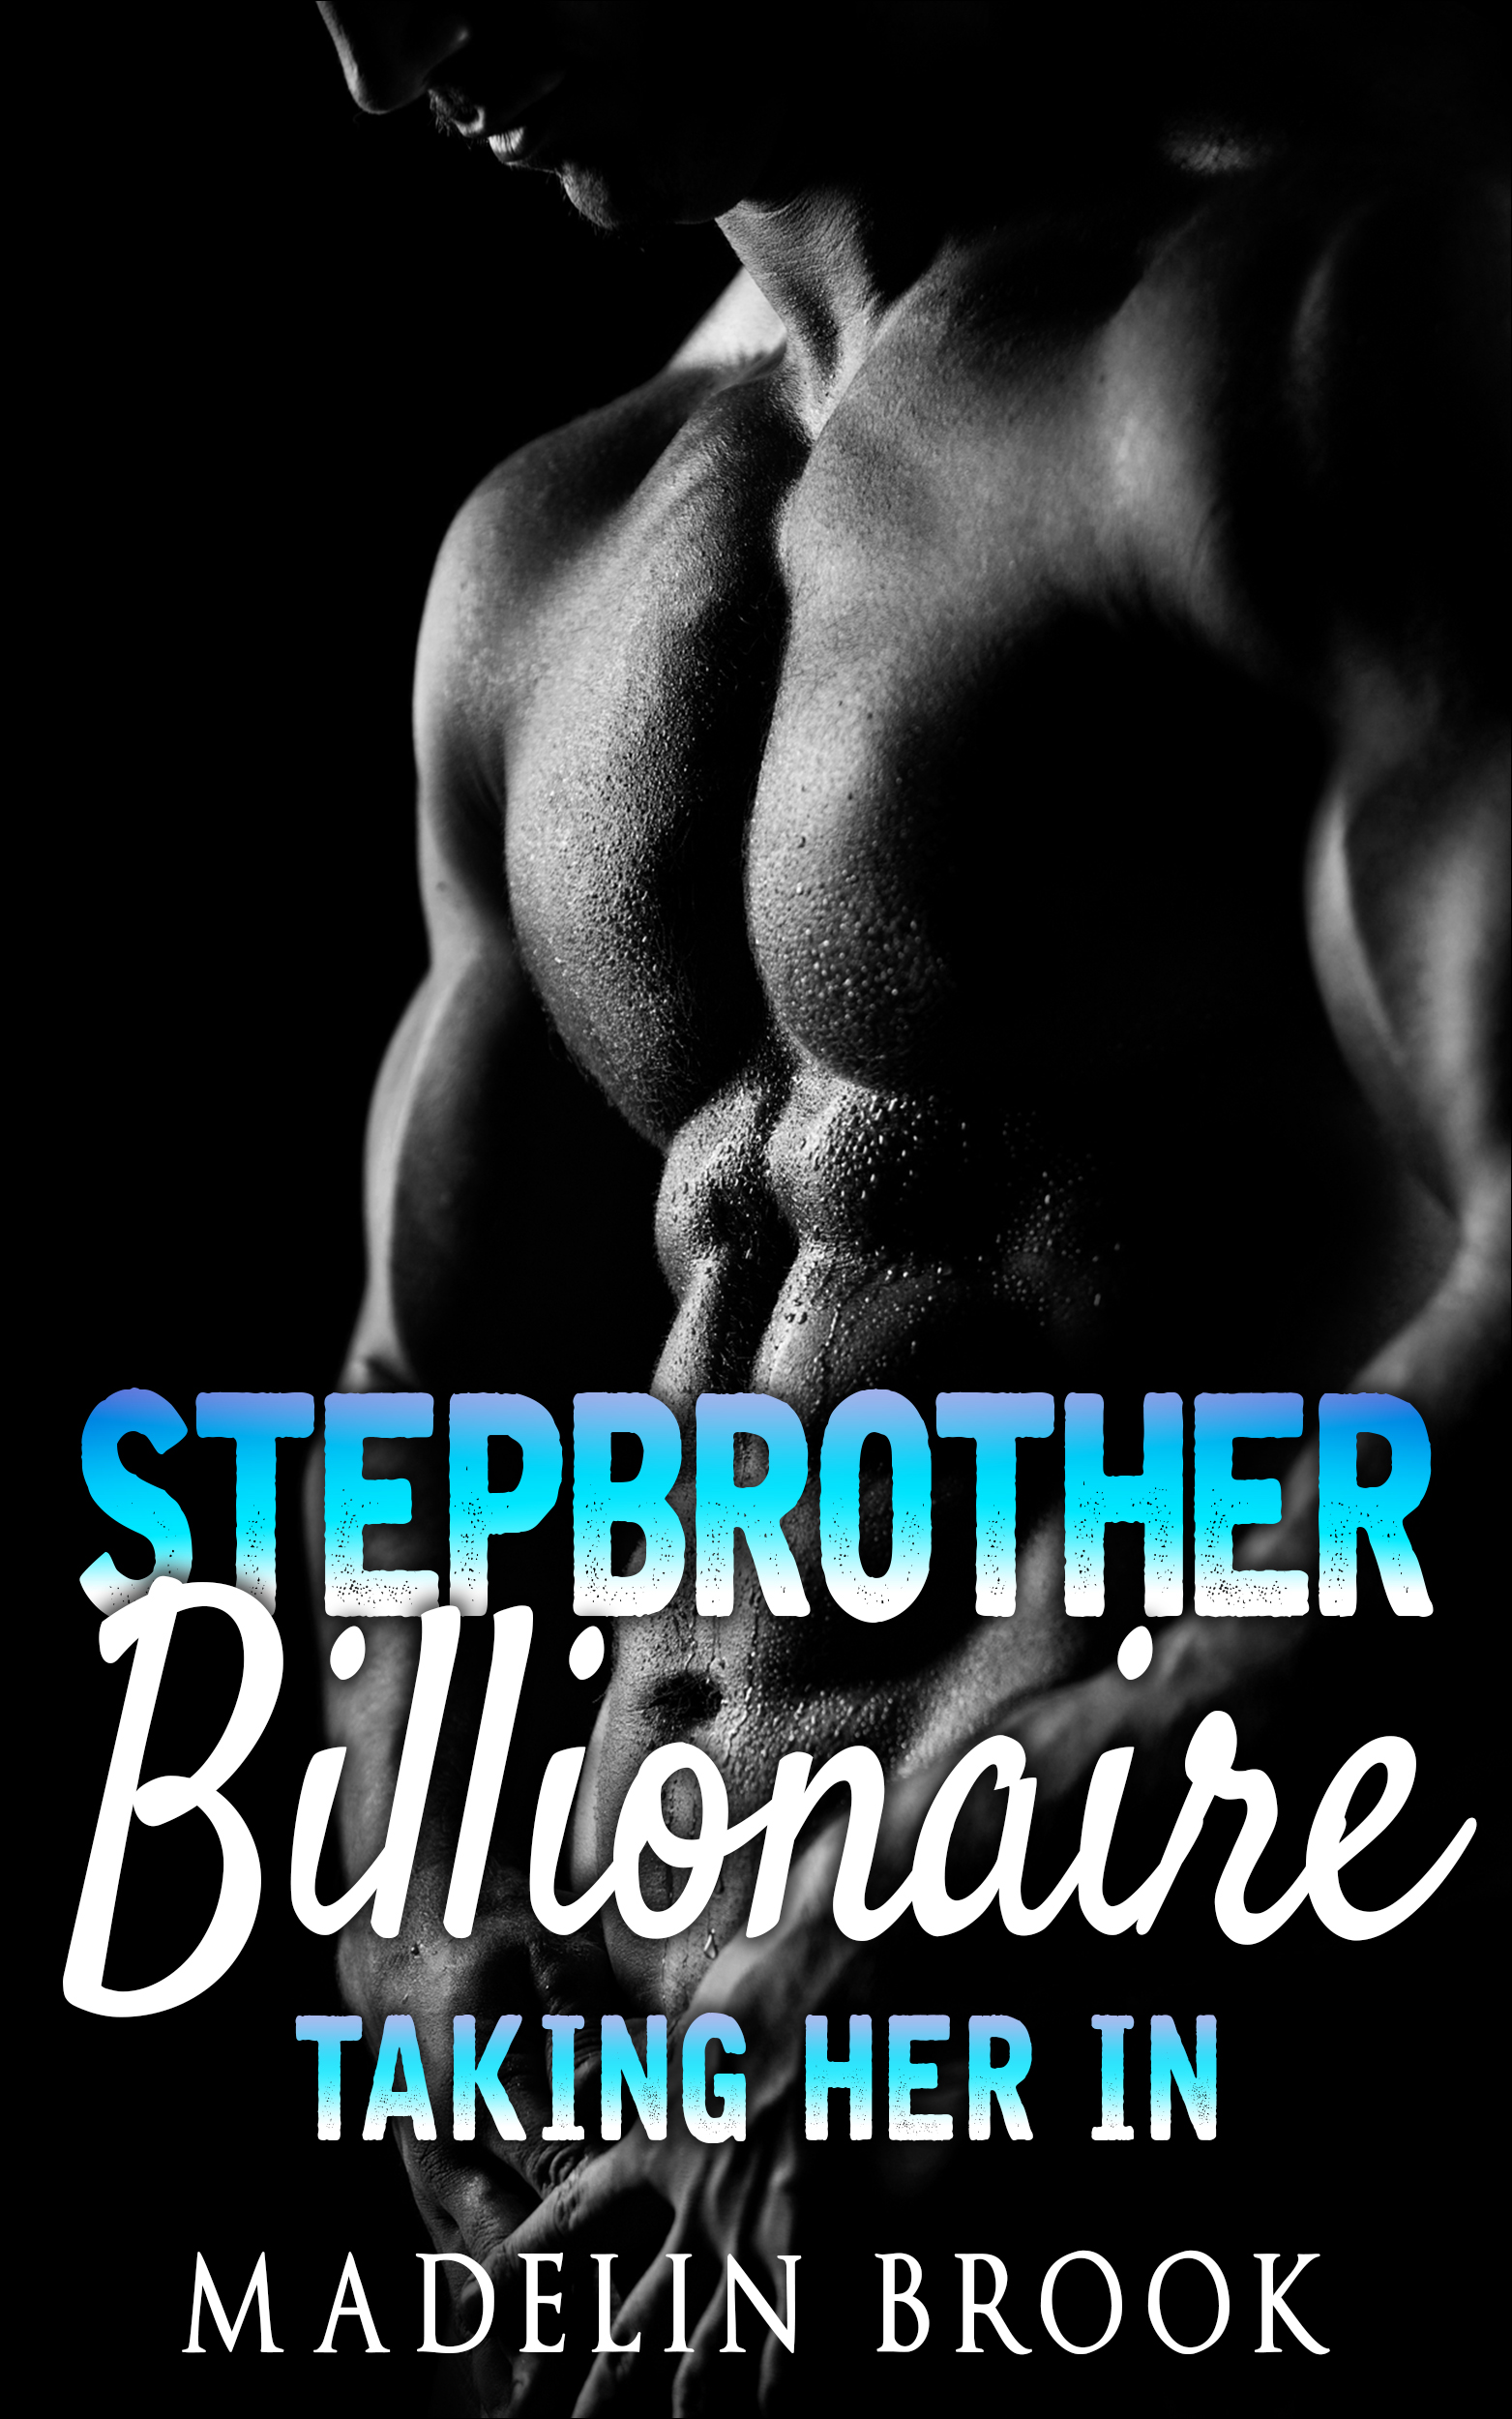 Stepbrother billionaire: taking her in